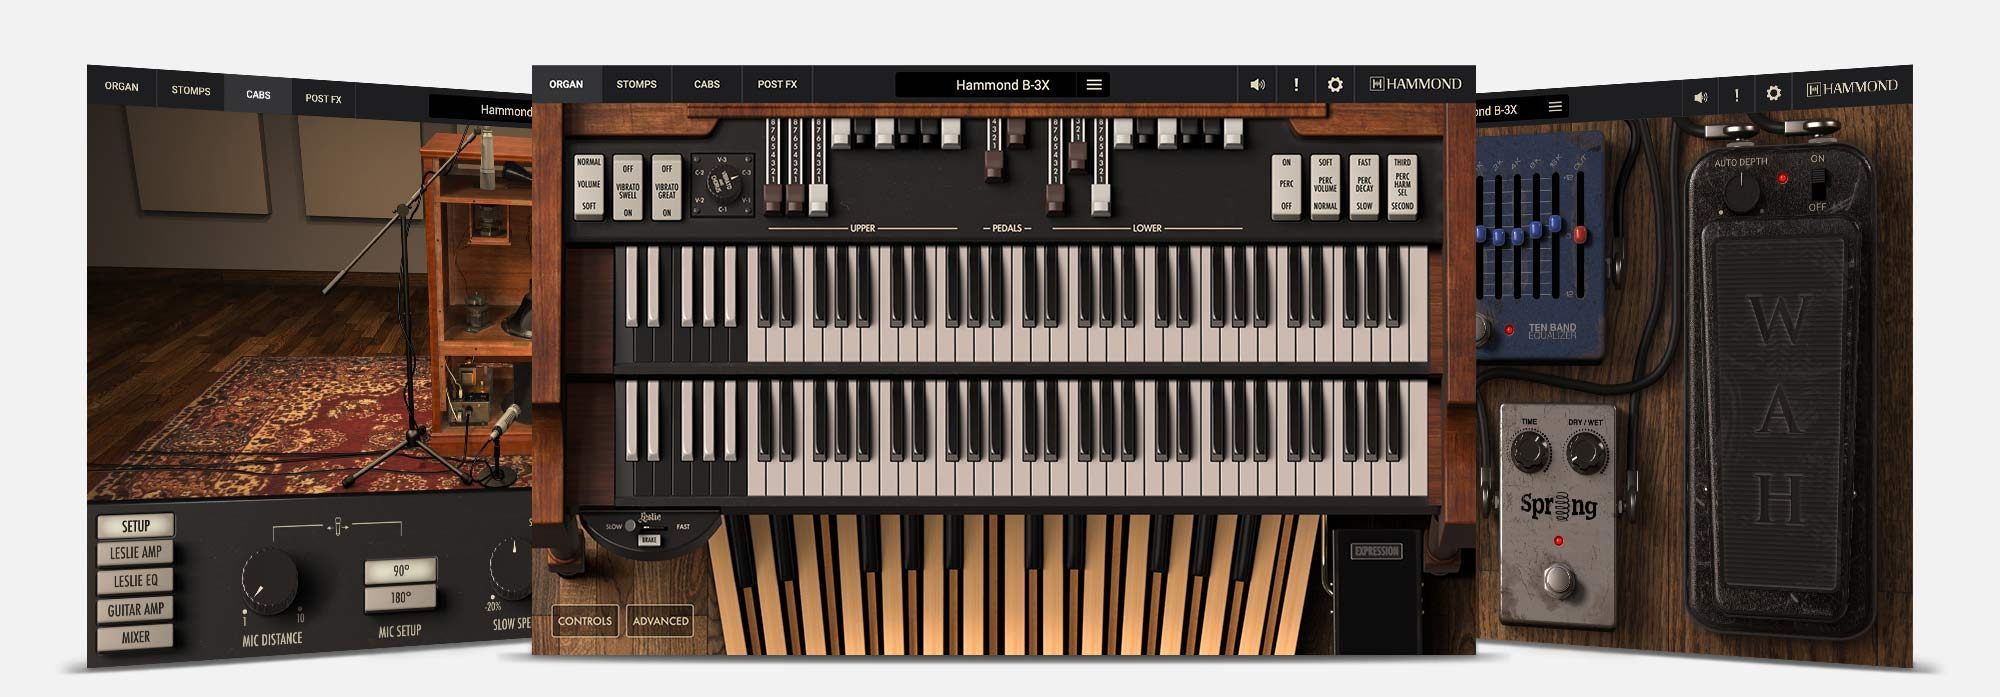 IK Multimedia Hammond B-3X Crossgrade eDelivery JRR Shop